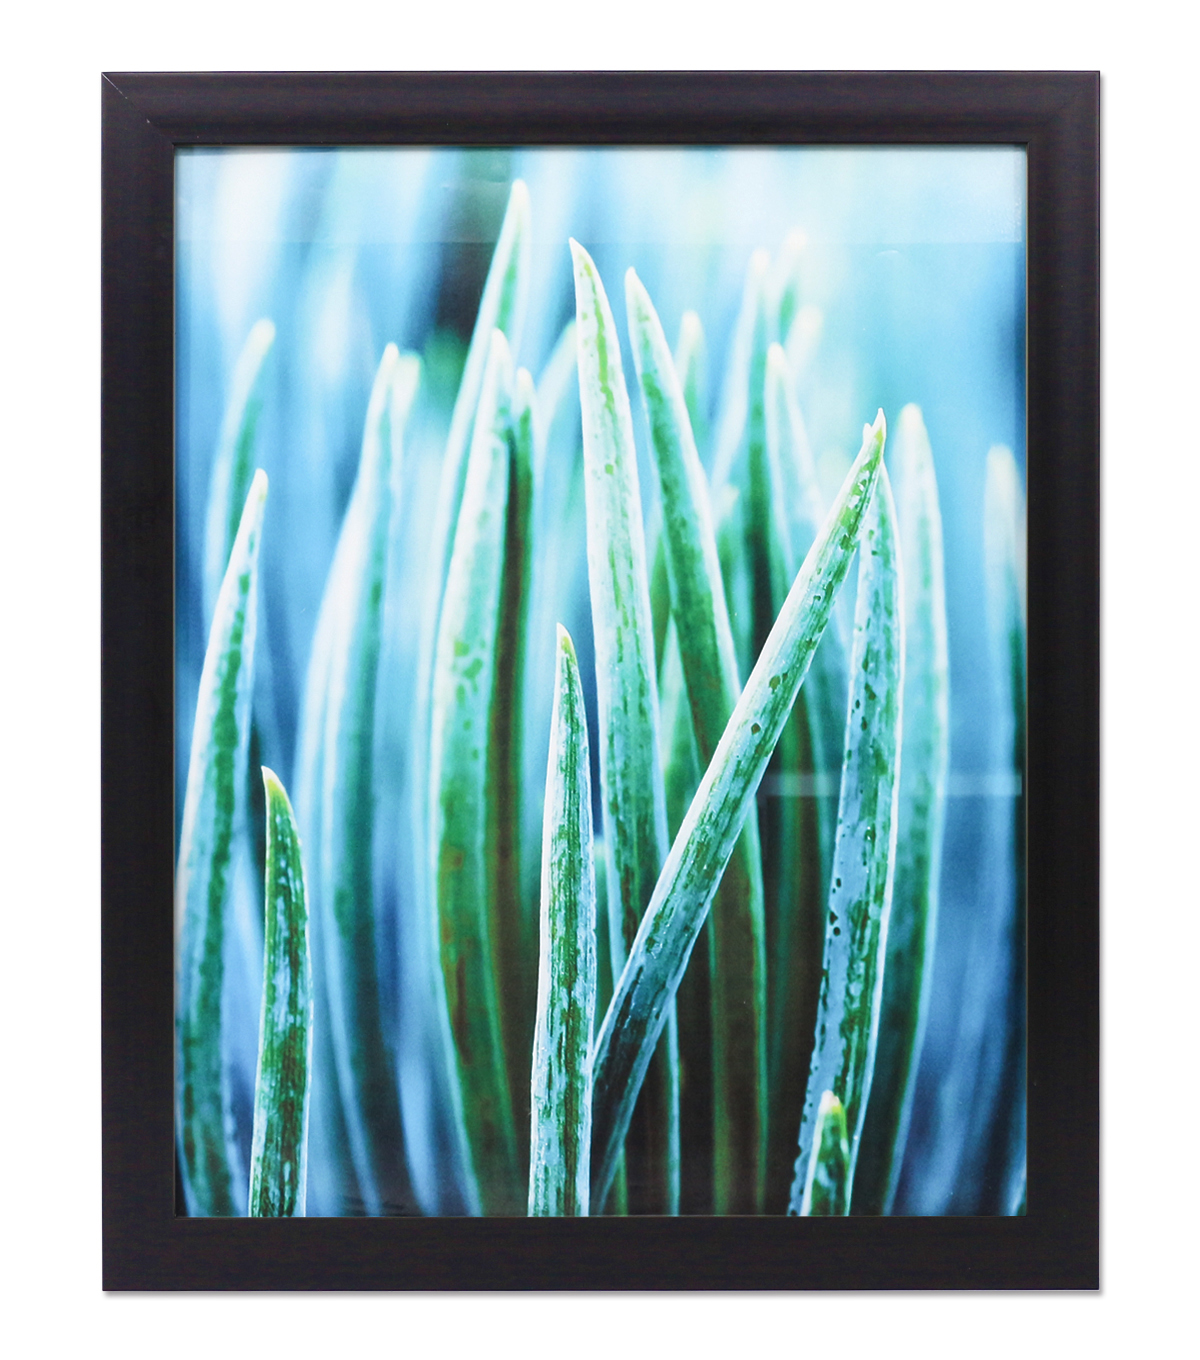 Framing wall hanging frames supplies joann portrait wall frame 16x20 black amipublicfo Images